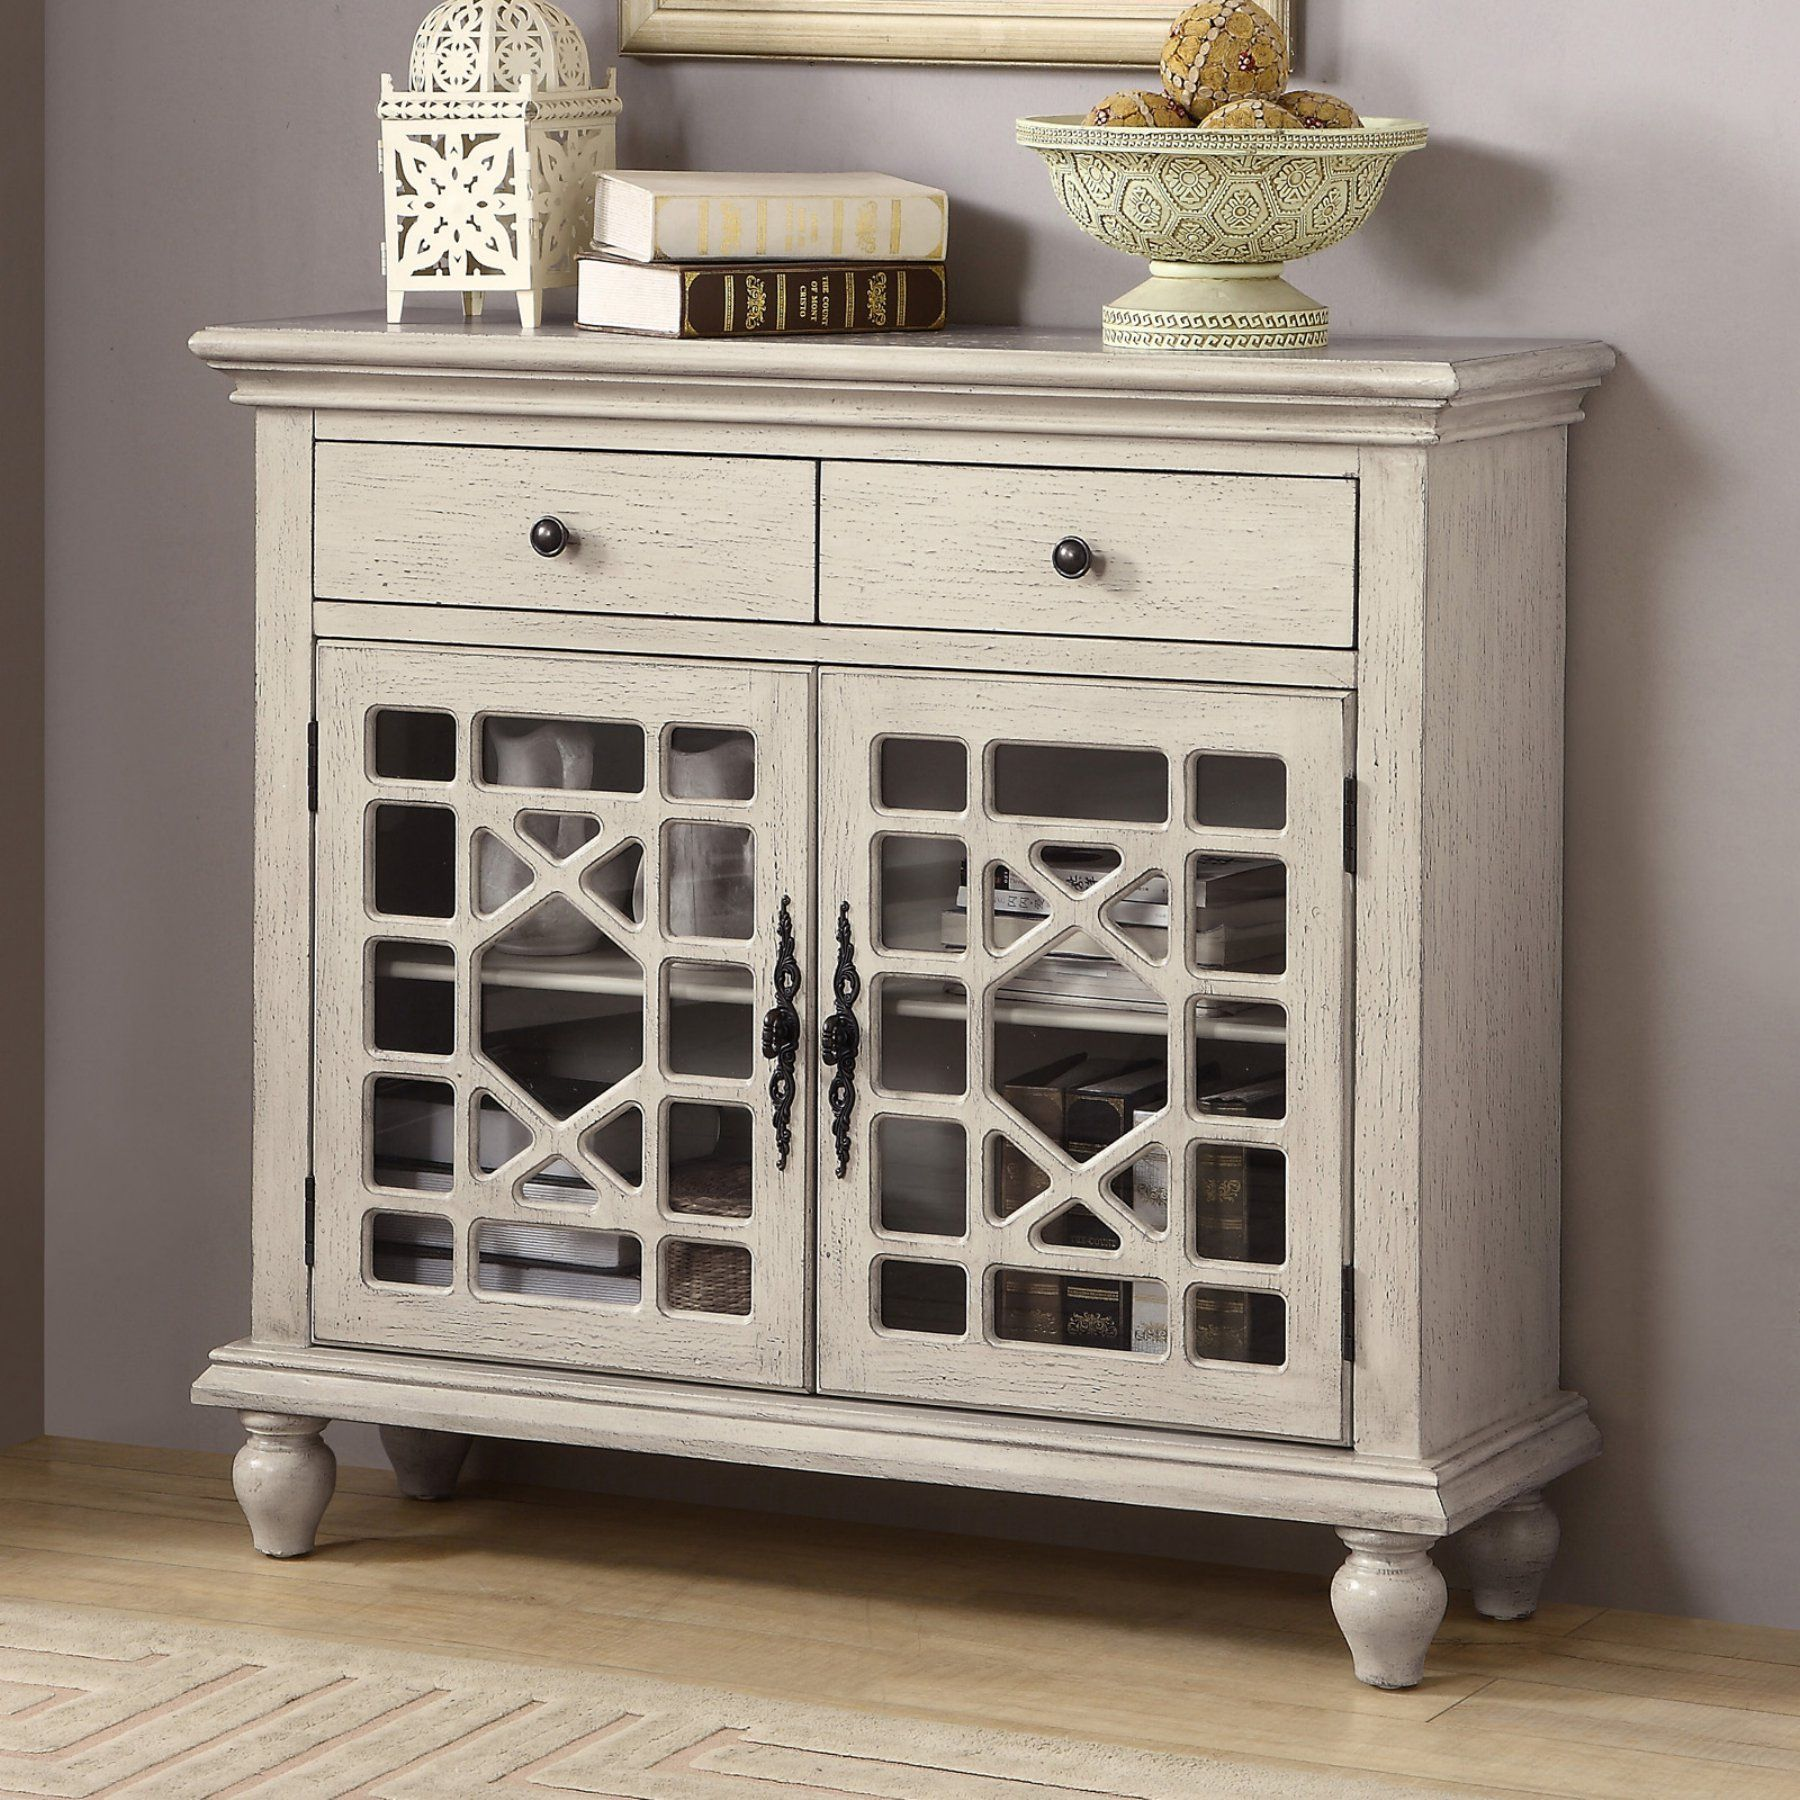 Coast To Coast 2 Drawer 2 Door Cabinet Glass Cabinet Doors Accent Cabinet Accent Doors Coast to coast cabinets